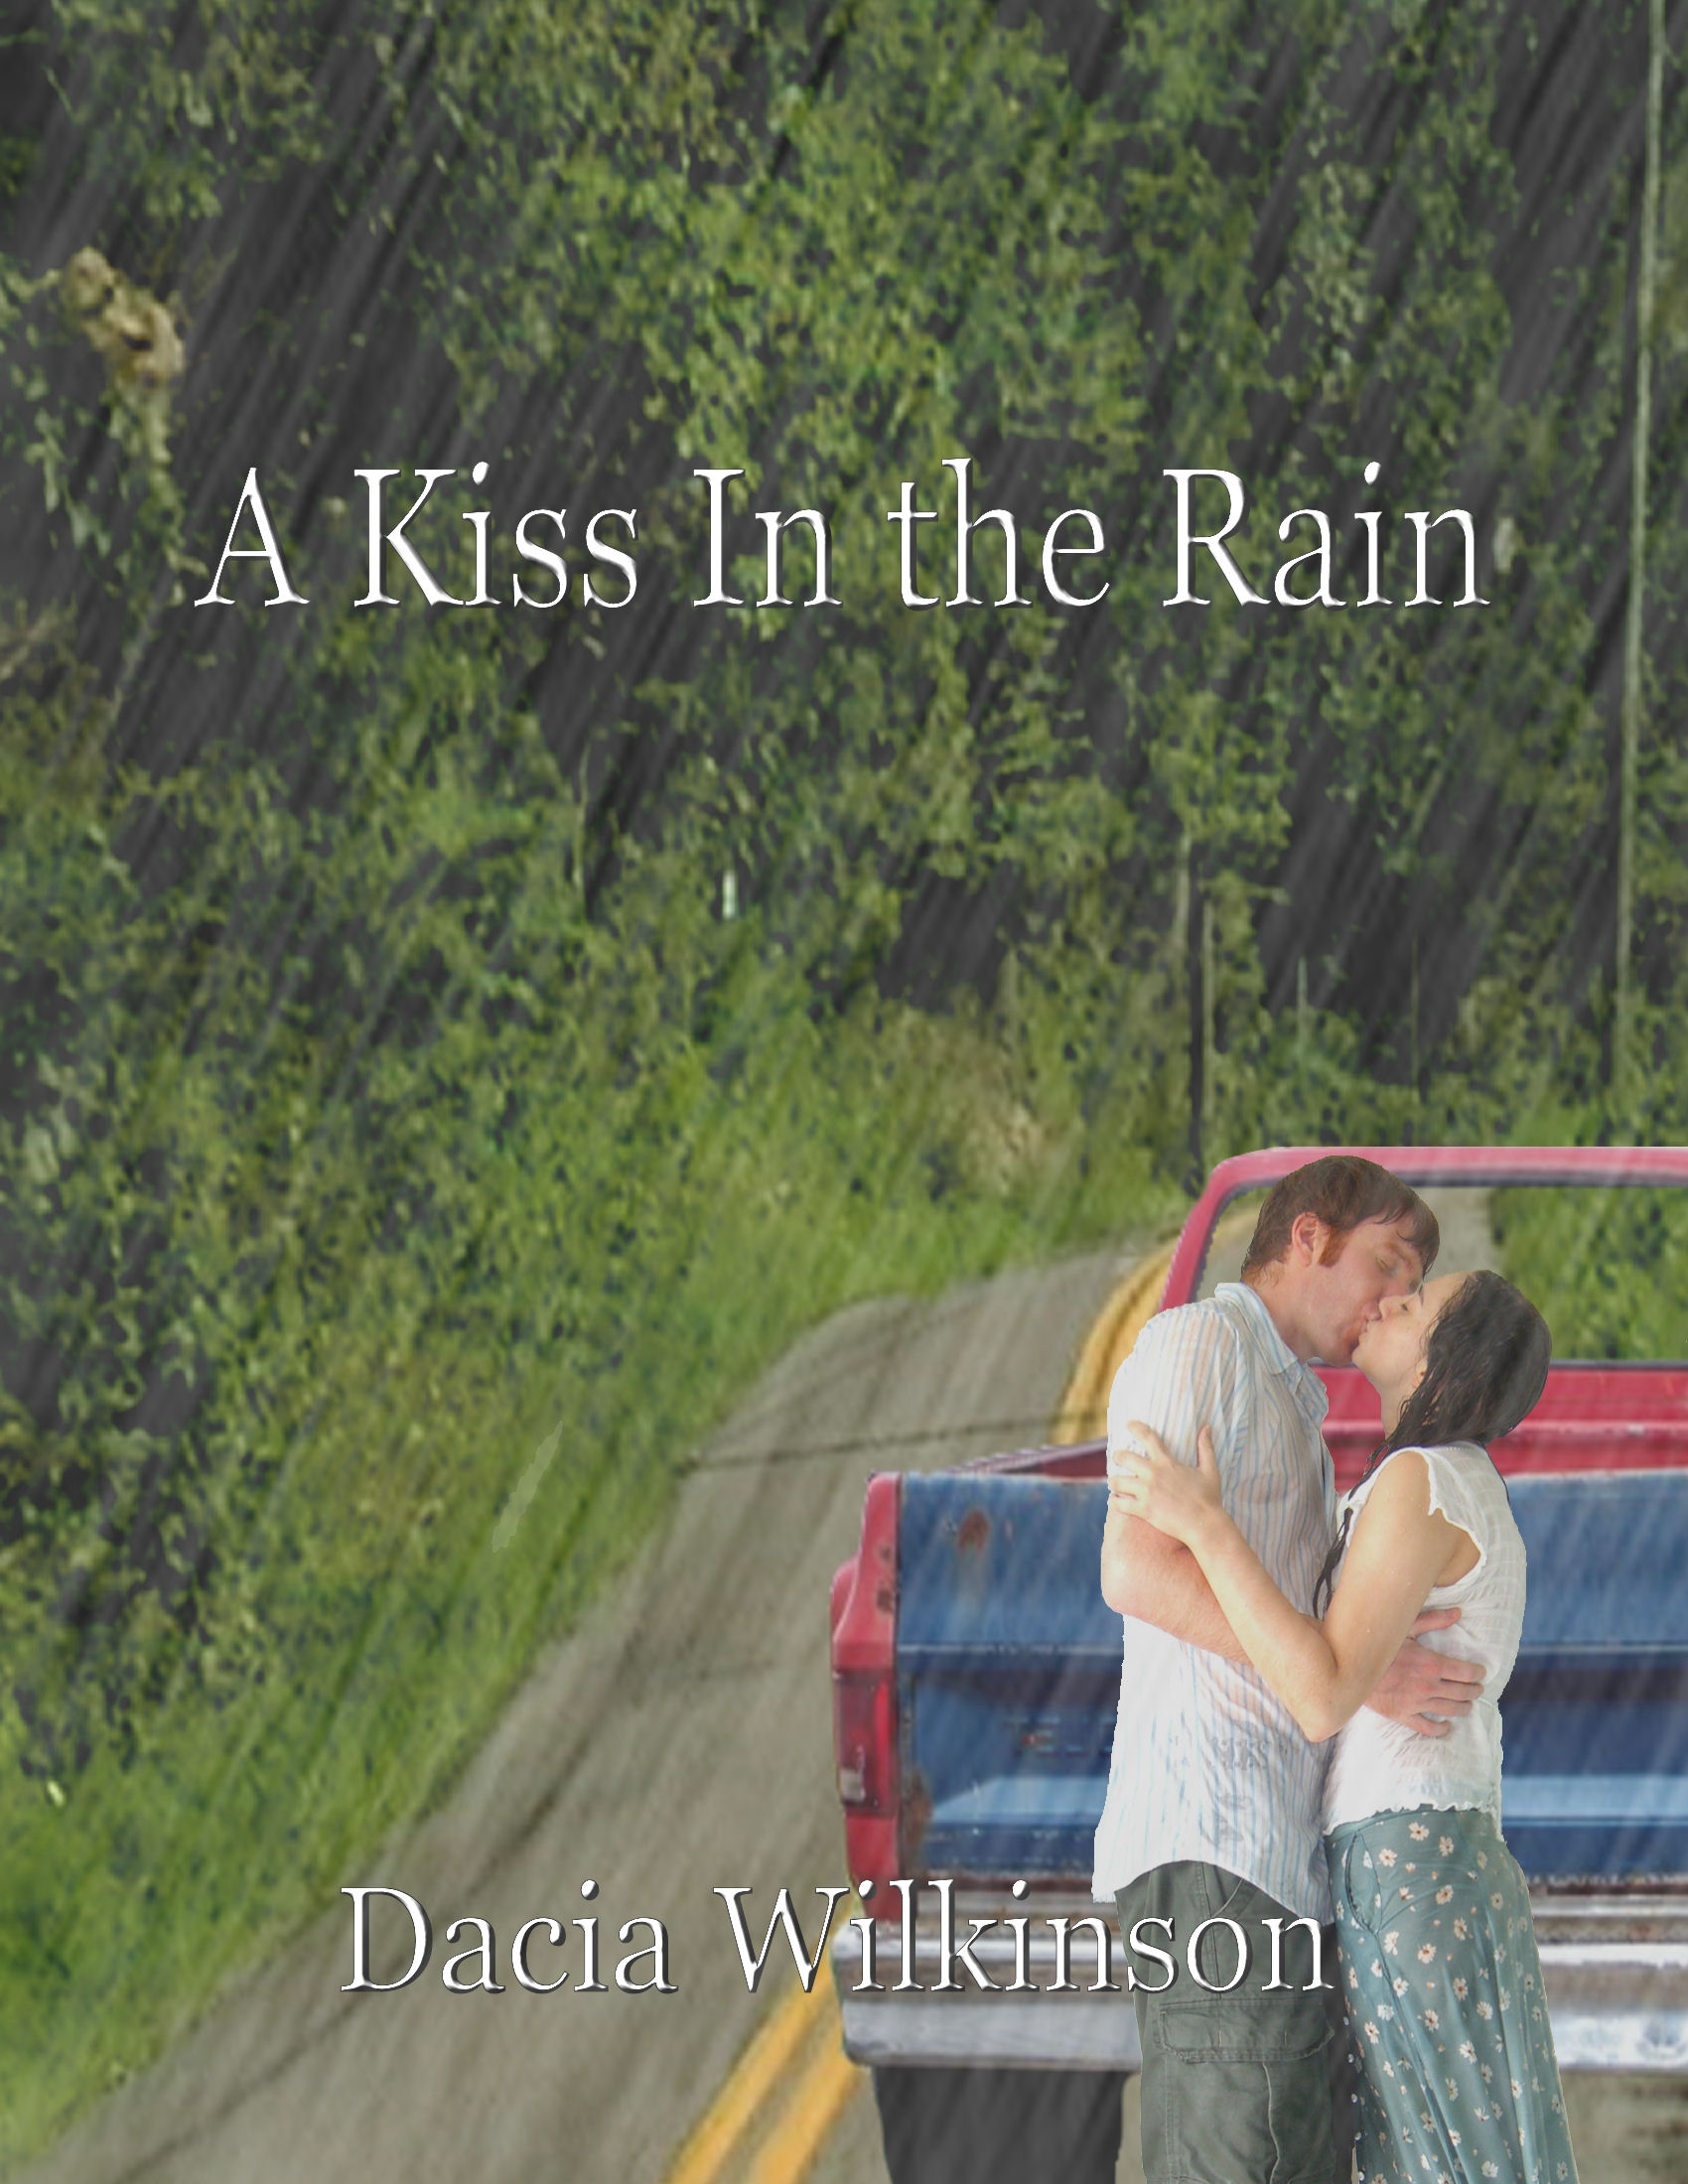 Sneak Peek: A Kiss in the Rain by Dacia Wilkinson